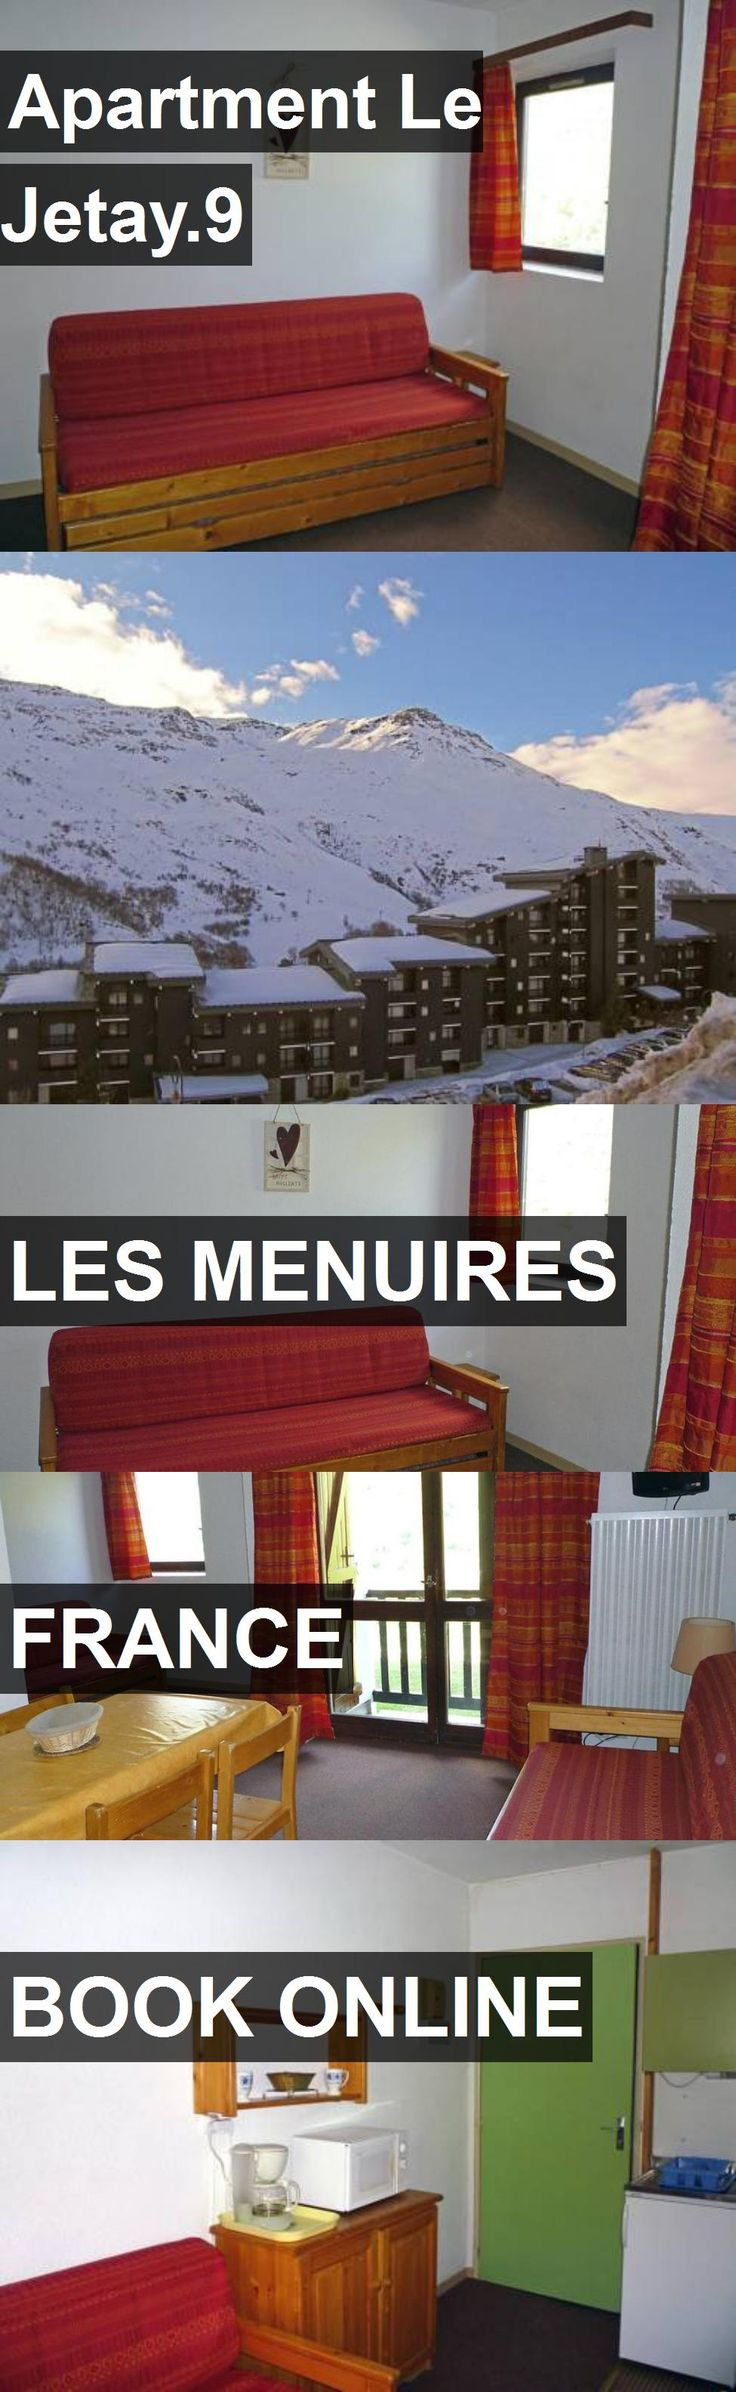 Apartment Le Jetay.9 in Les Menuires, France. For more information, photos, reviews and best prices please follow the link. #France #LesMenuires #travel #vacation #apartment